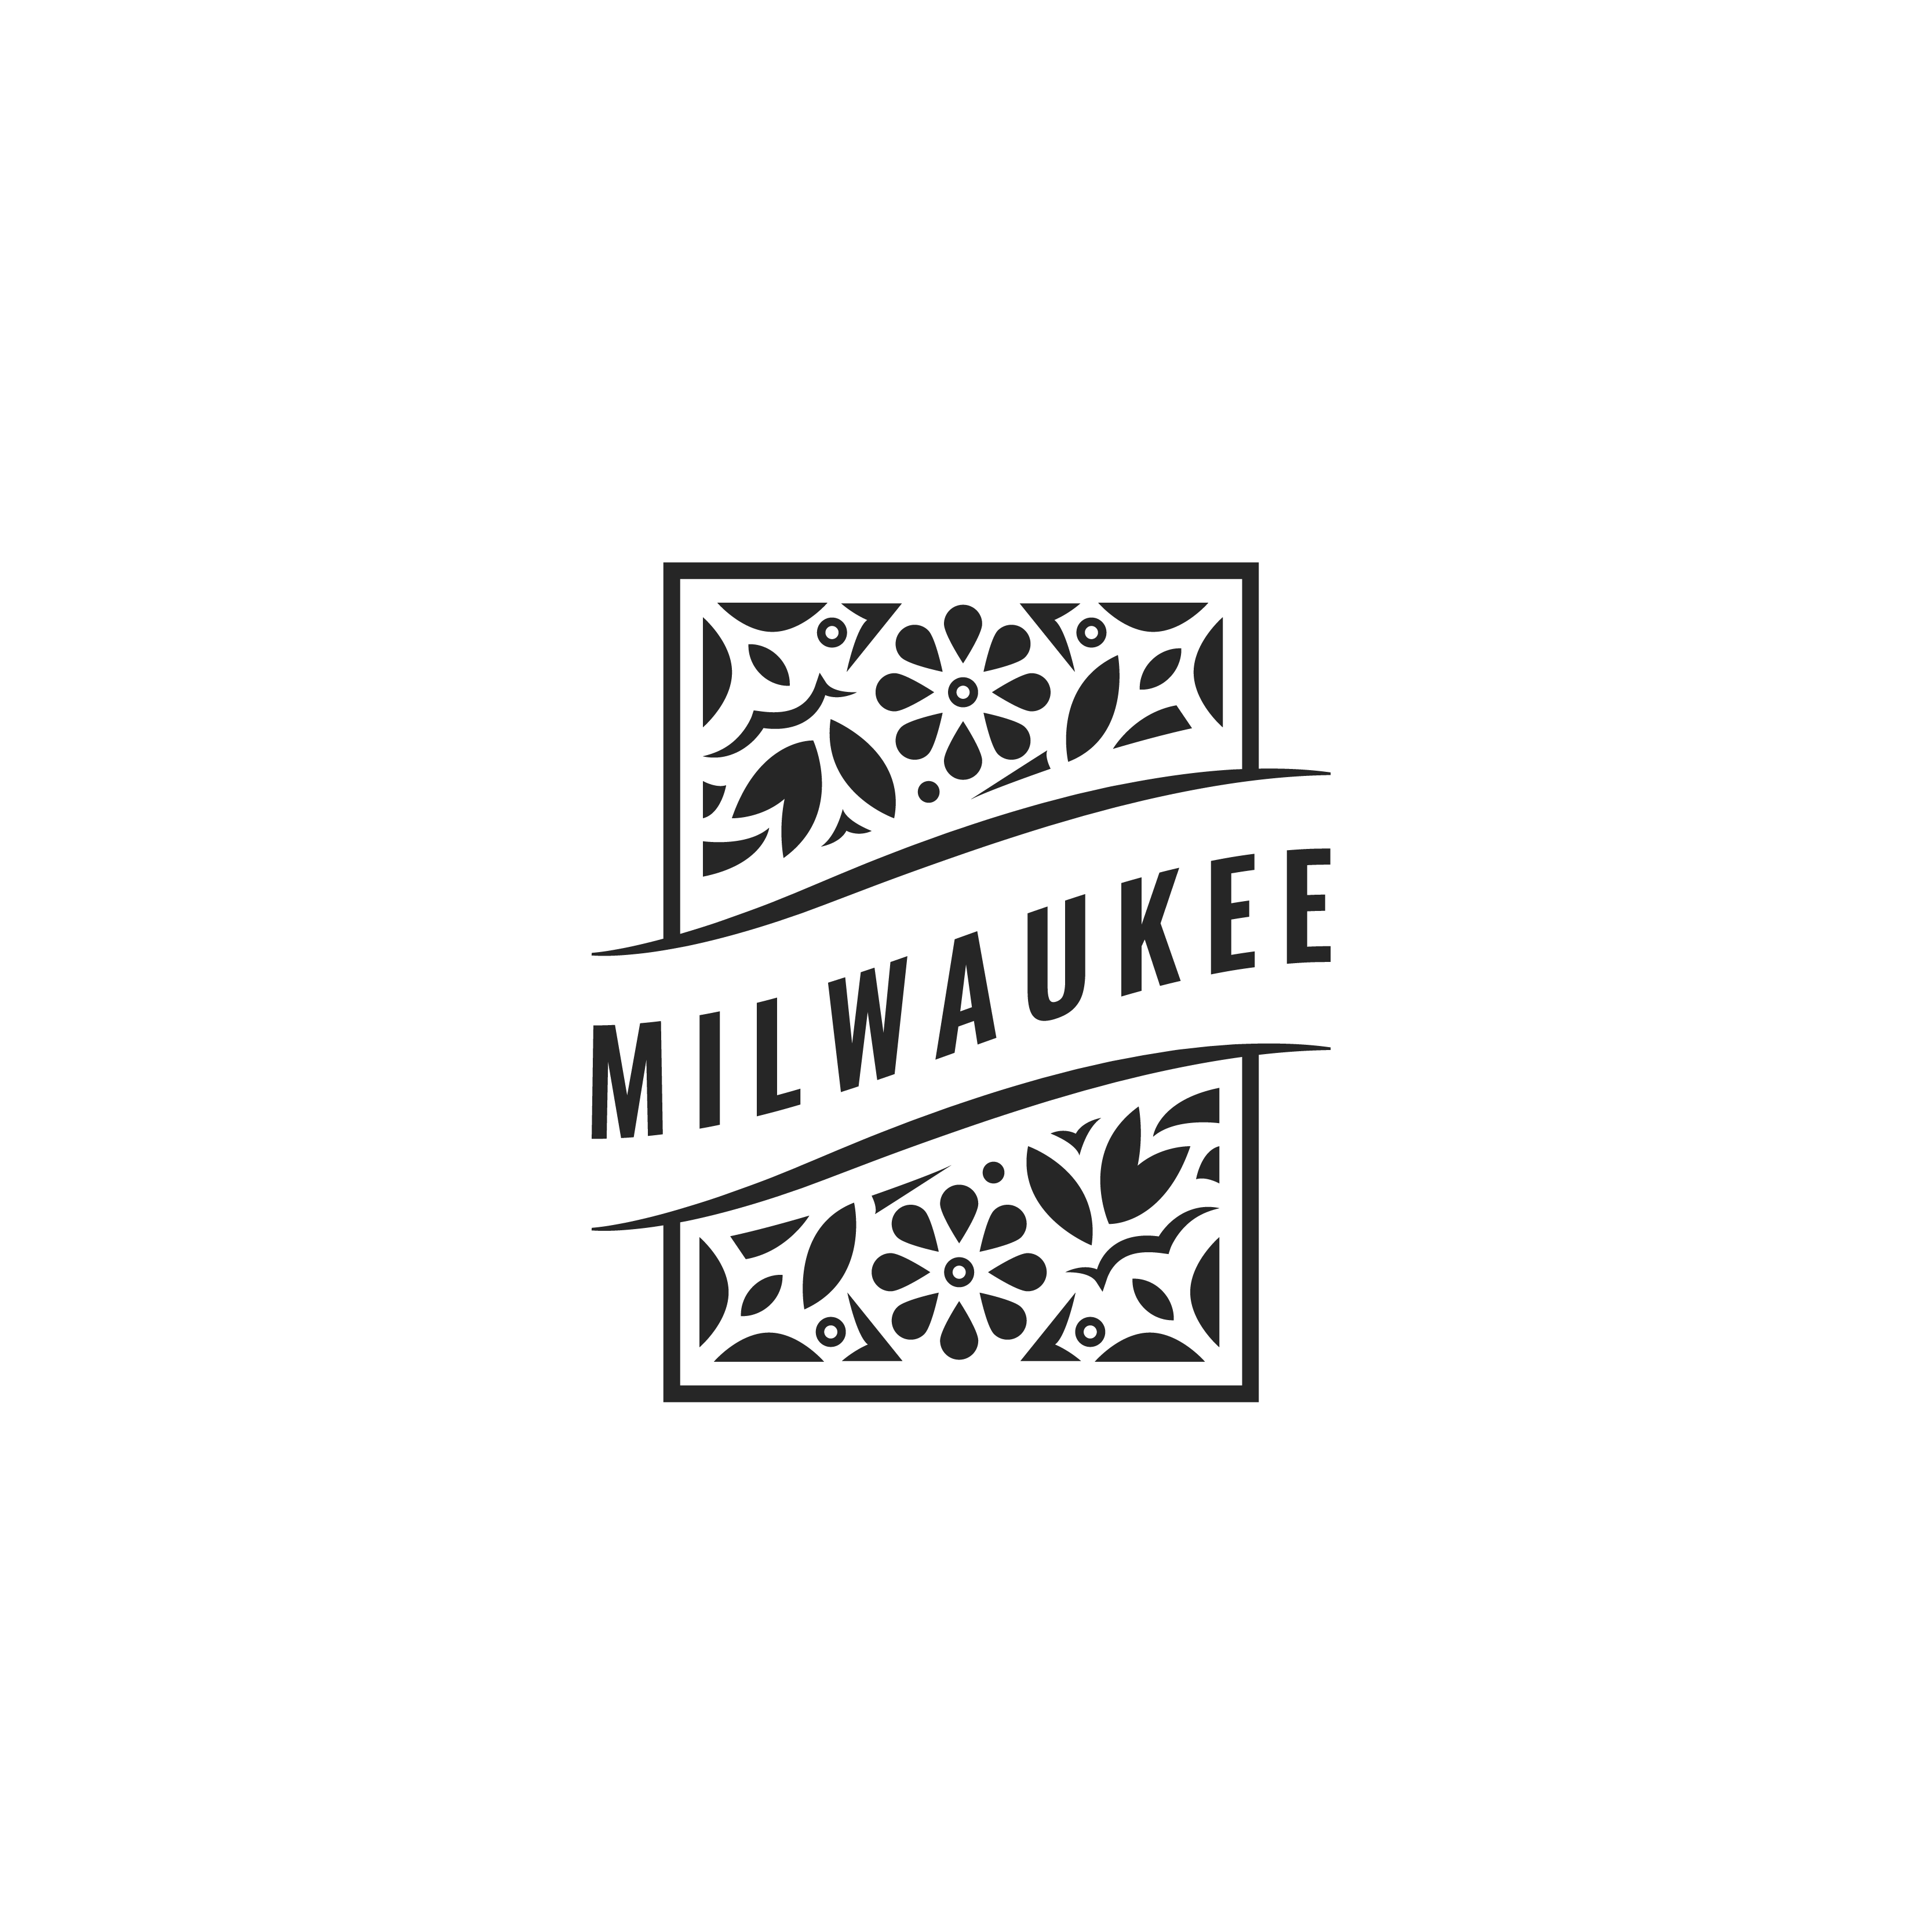 Milwaukee Floral (NO TEXT)